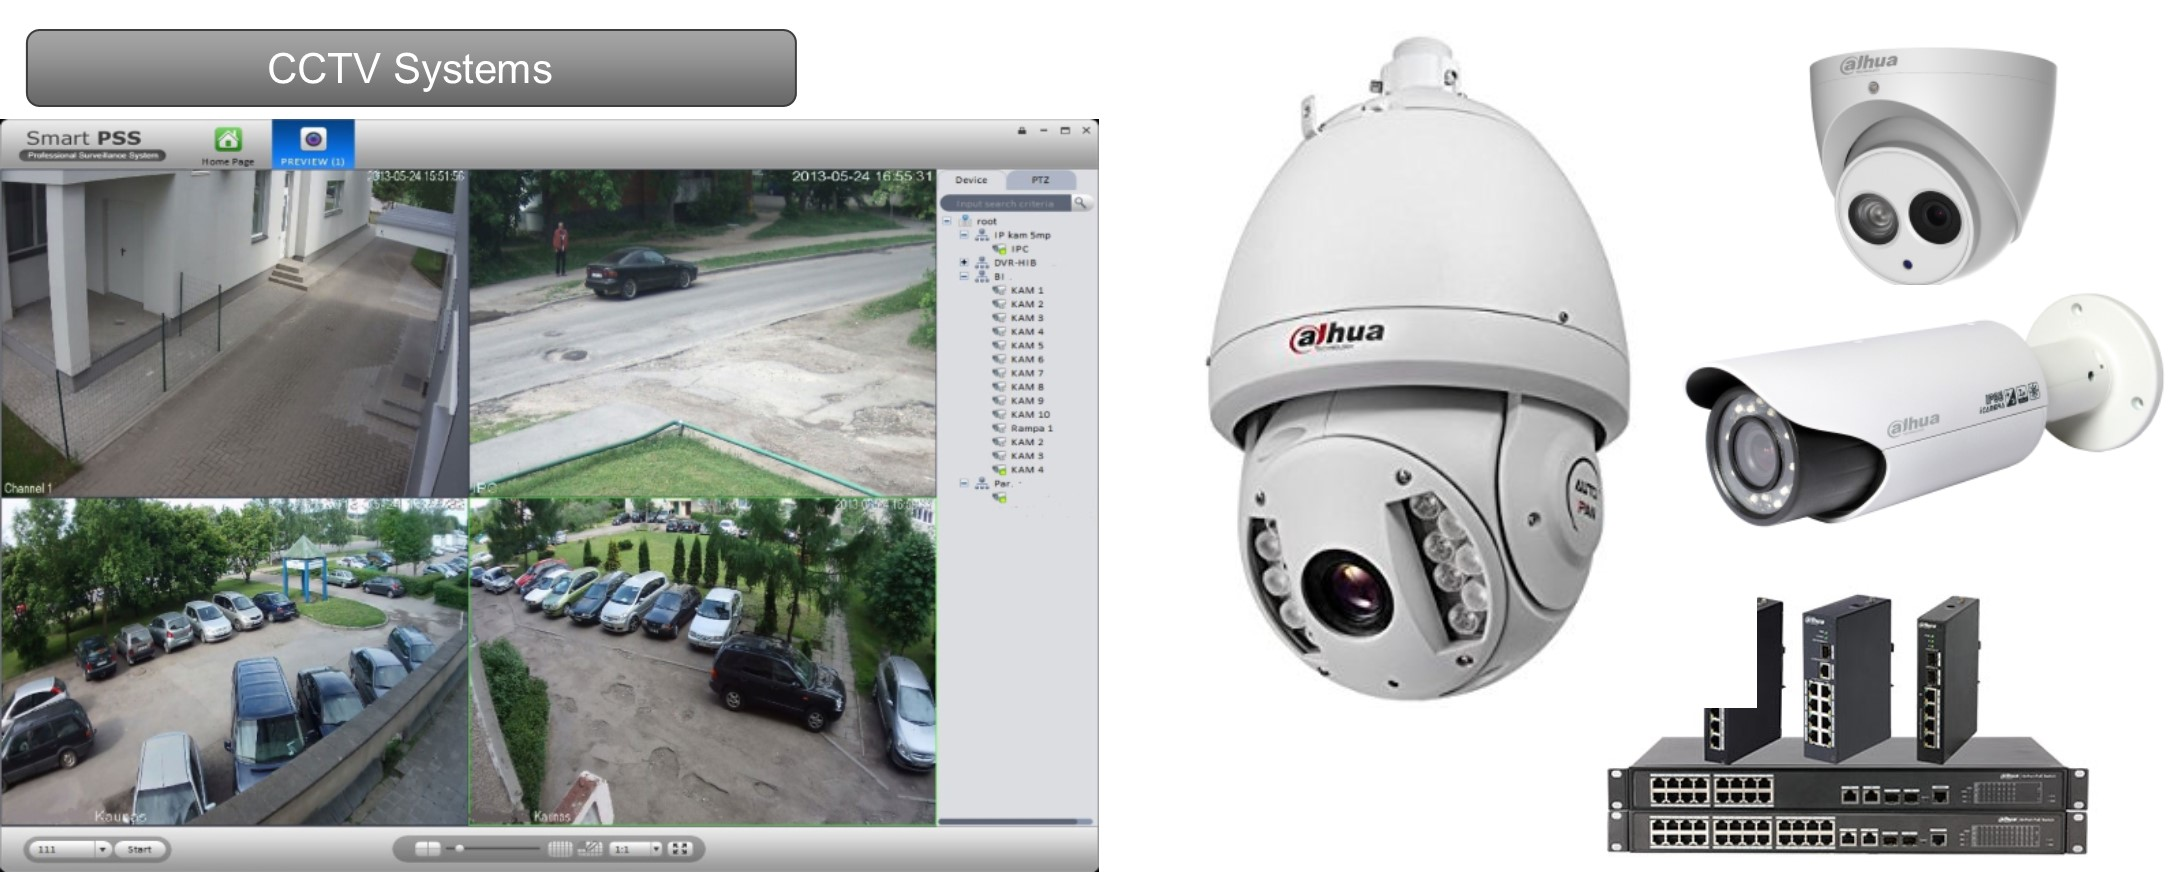 CCTV surveillance systems can greatly enhance security at your home or commercial property. Whether you need a CCTV system for a shop, car park or factory, the benefits include crime prevention, monitoring activity and insurance savings.